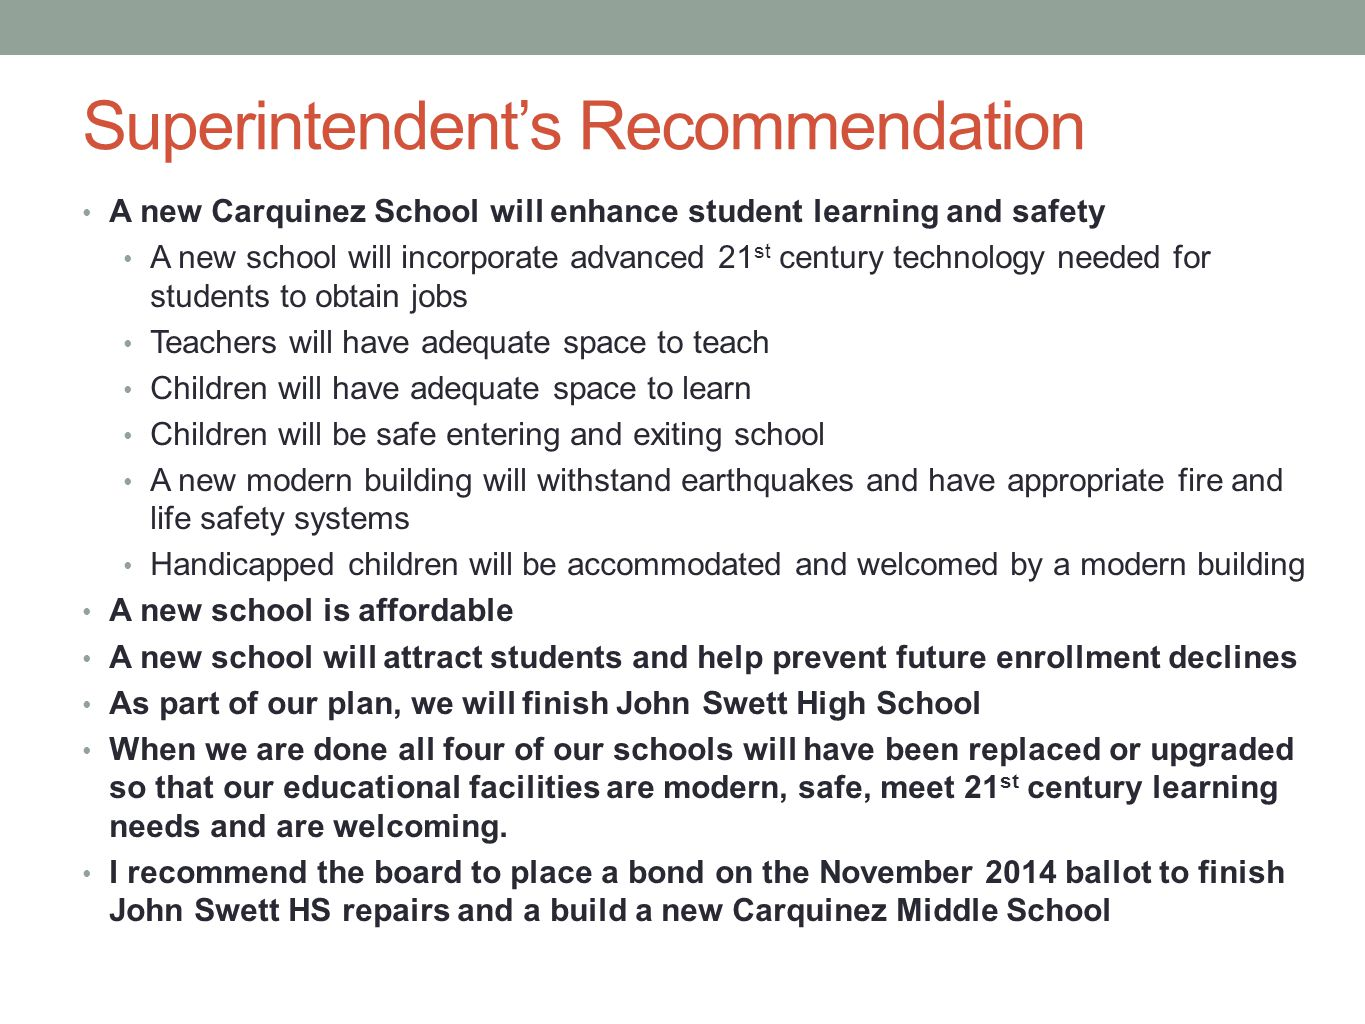 Superintendents Recommendation A new Carquinez School will enhance student learning and safety A new school will incorporate advanced 21 st century technology needed for students to obtain jobs Teachers will have adequate space to teach Children will have adequate space to learn Children will be safe entering and exiting school A new modern building will withstand earthquakes and have appropriate fire and life safety systems Handicapped children will be accommodated and welcomed by a modern building A new school is affordable A new school will attract students and help prevent future enrollment declines As part of our plan, we will finish John Swett High School When we are done all four of our schools will have been replaced or upgraded so that our educational facilities are modern, safe, meet 21 st century learning needs and are welcoming.